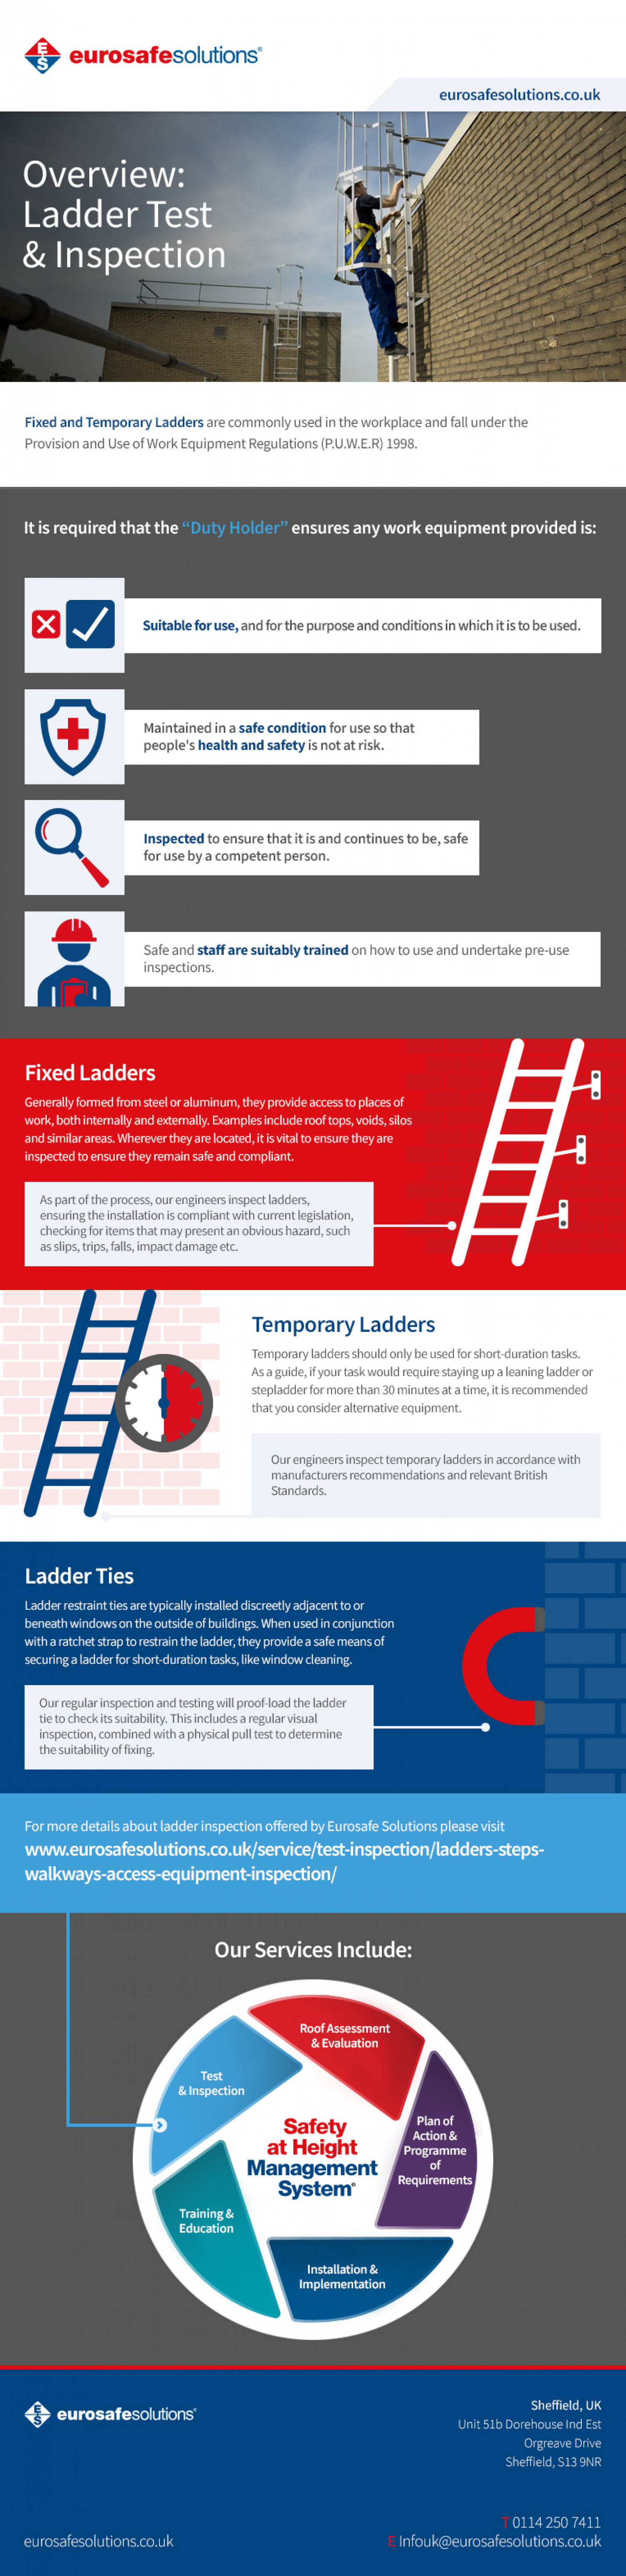 Overview: Ladder Test & Inspection Infographic